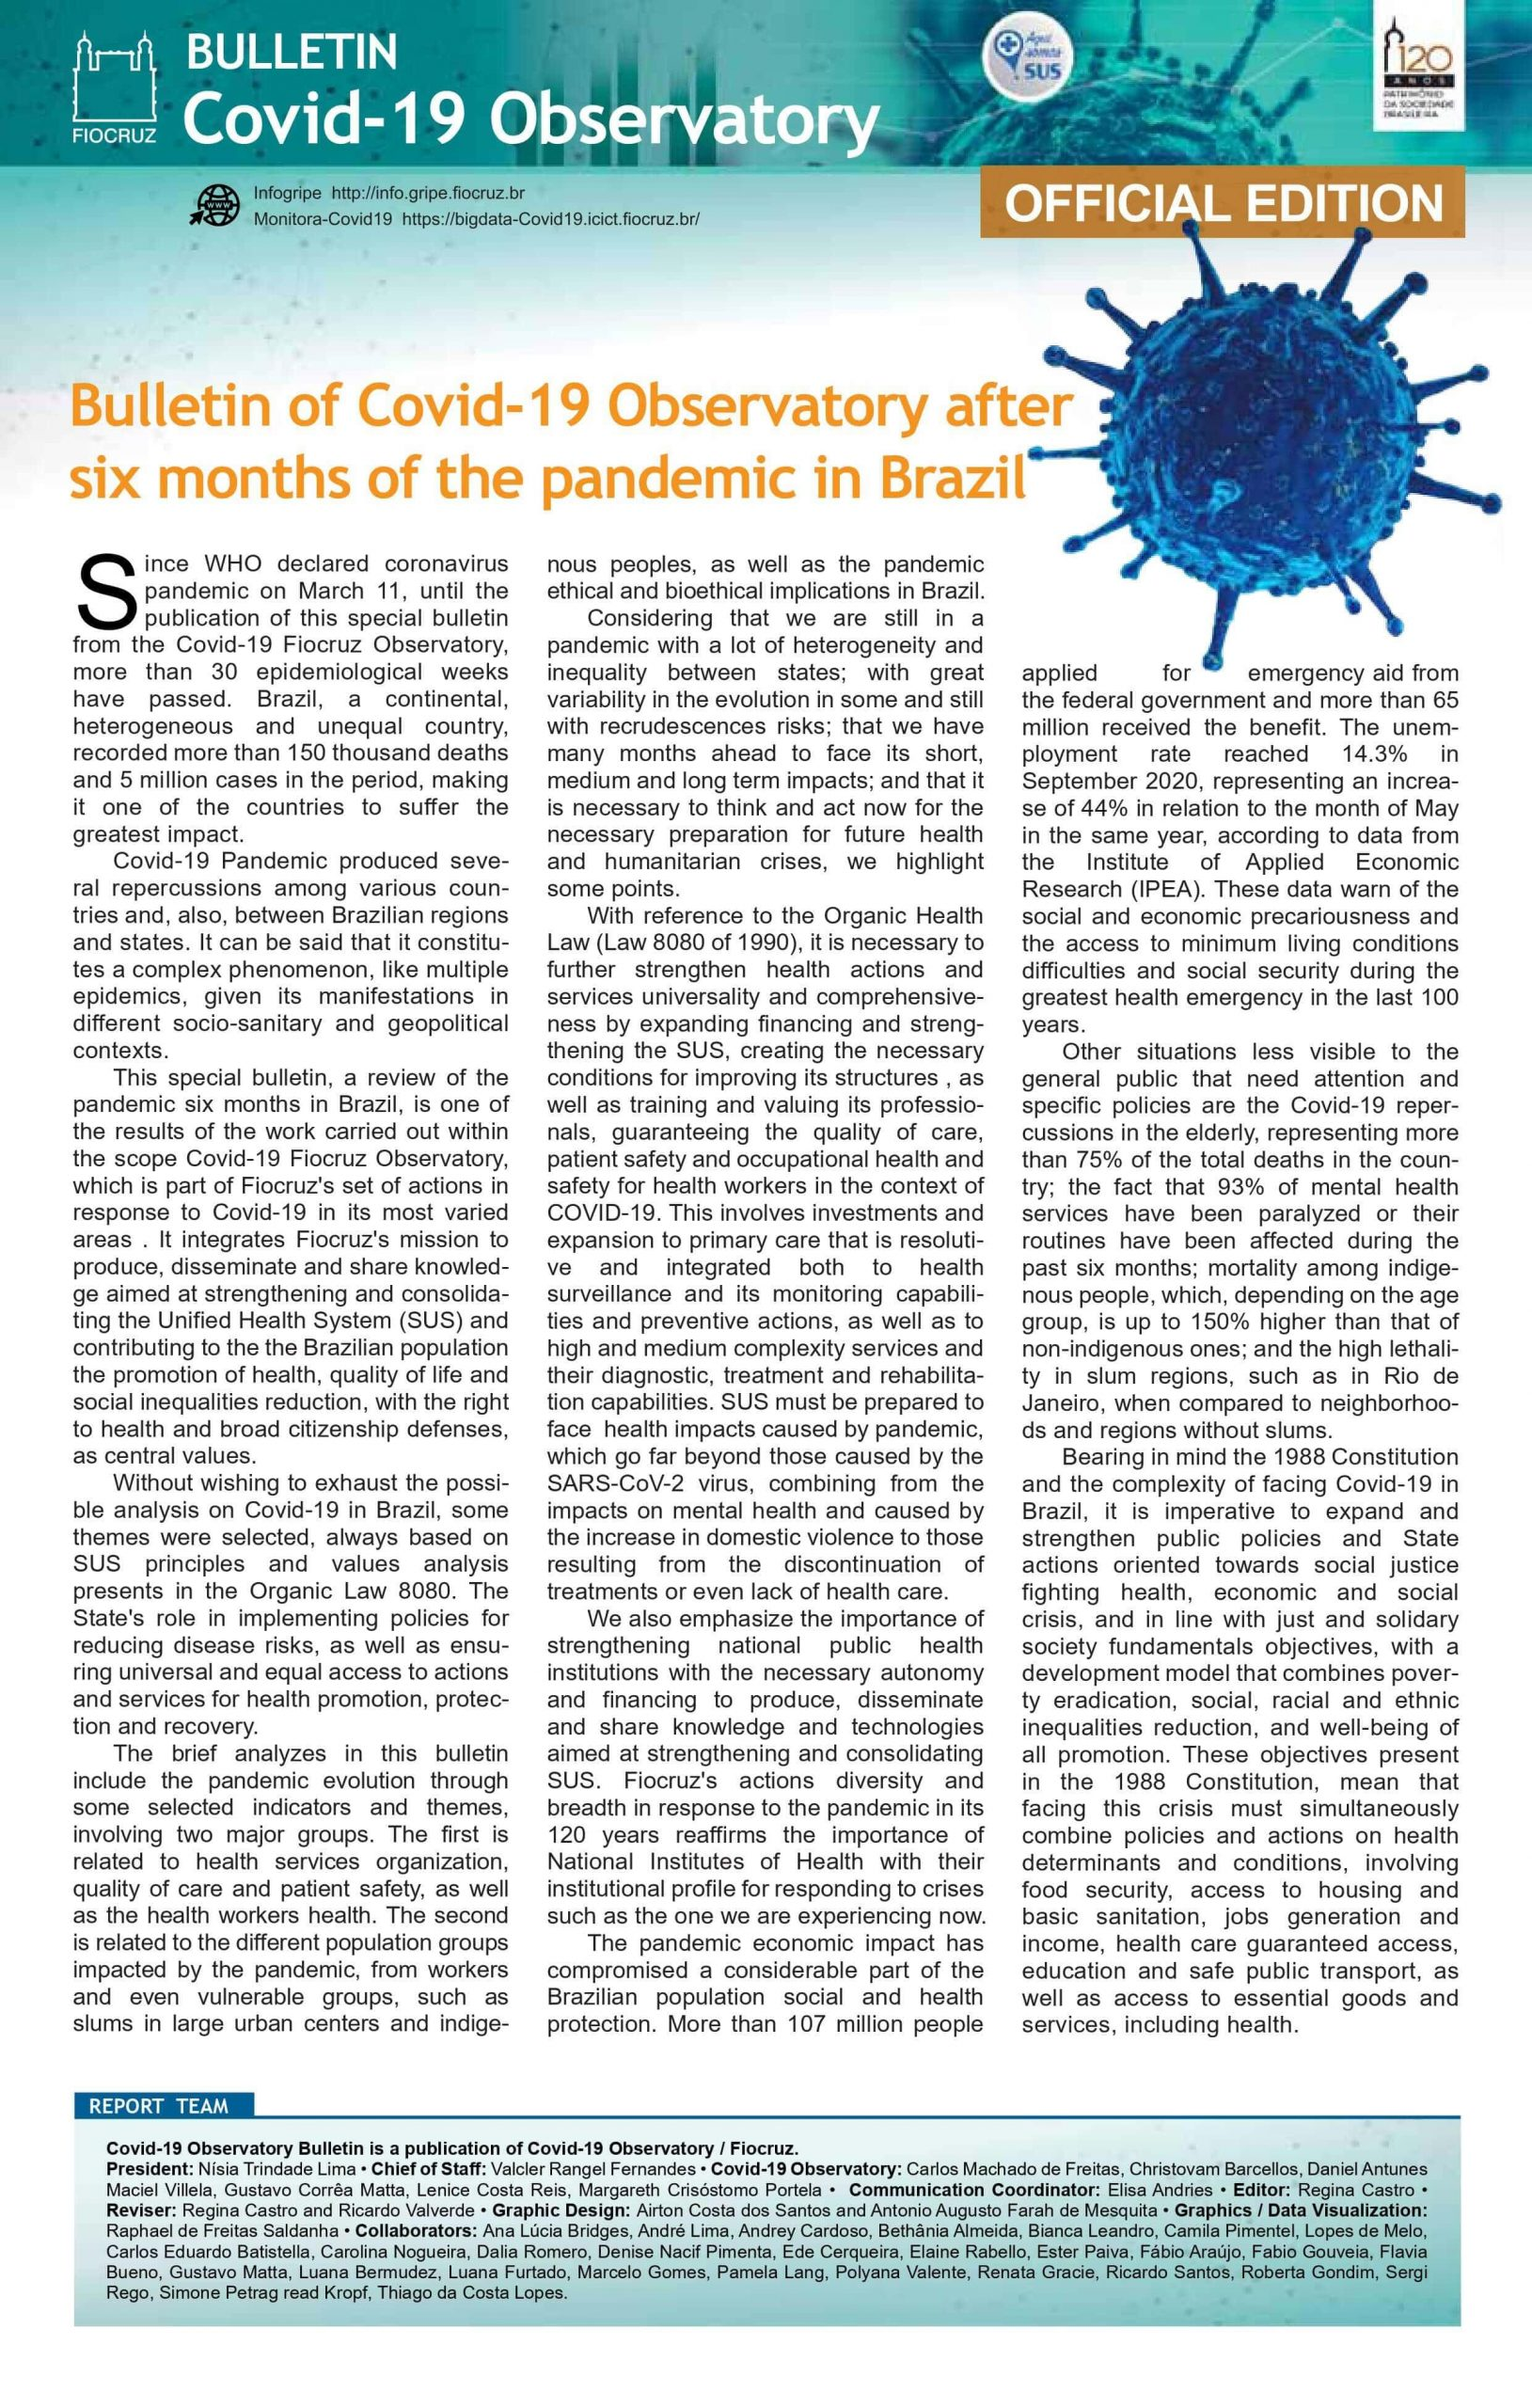 After six months of the COVID-19 pandemic in Brazil